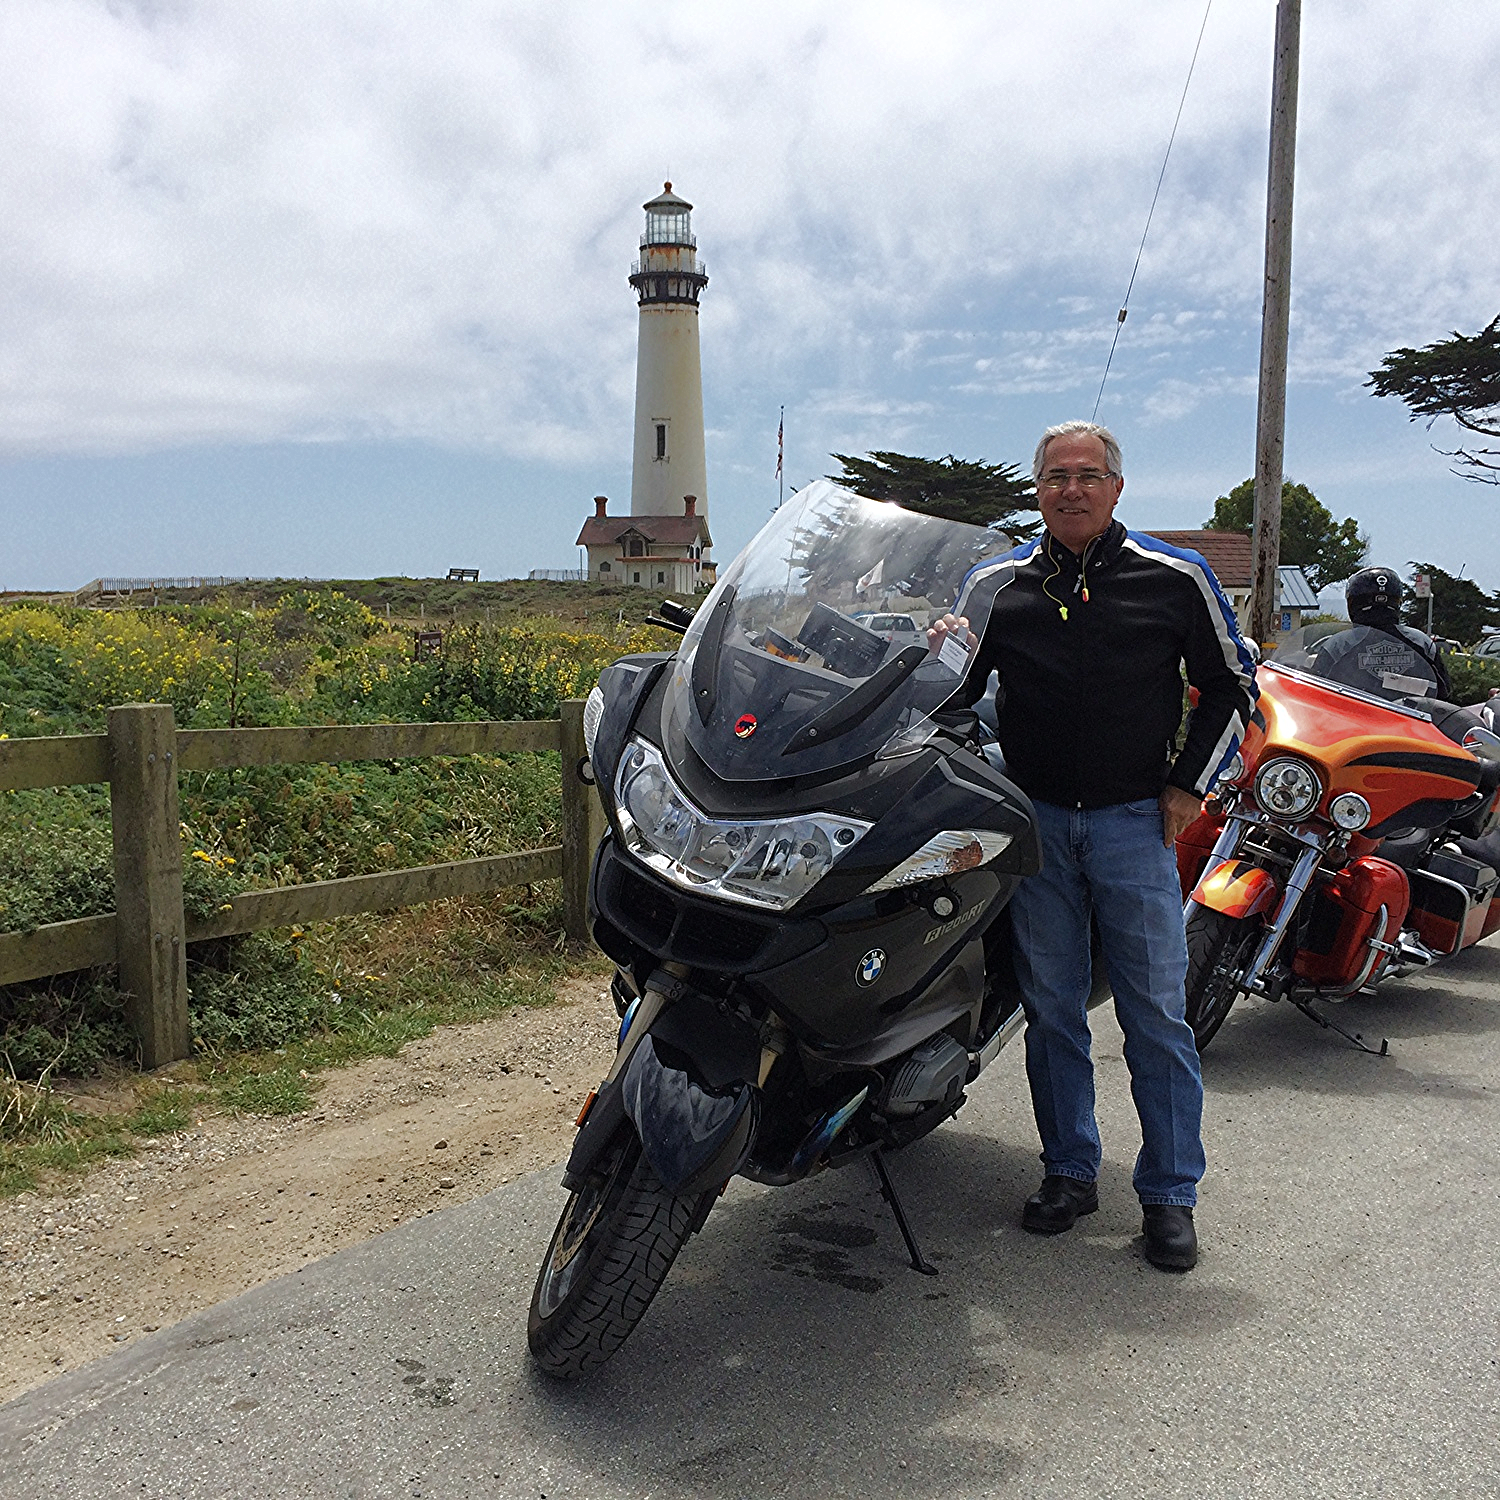 Here I am along Pacific Coast Highway No. 1